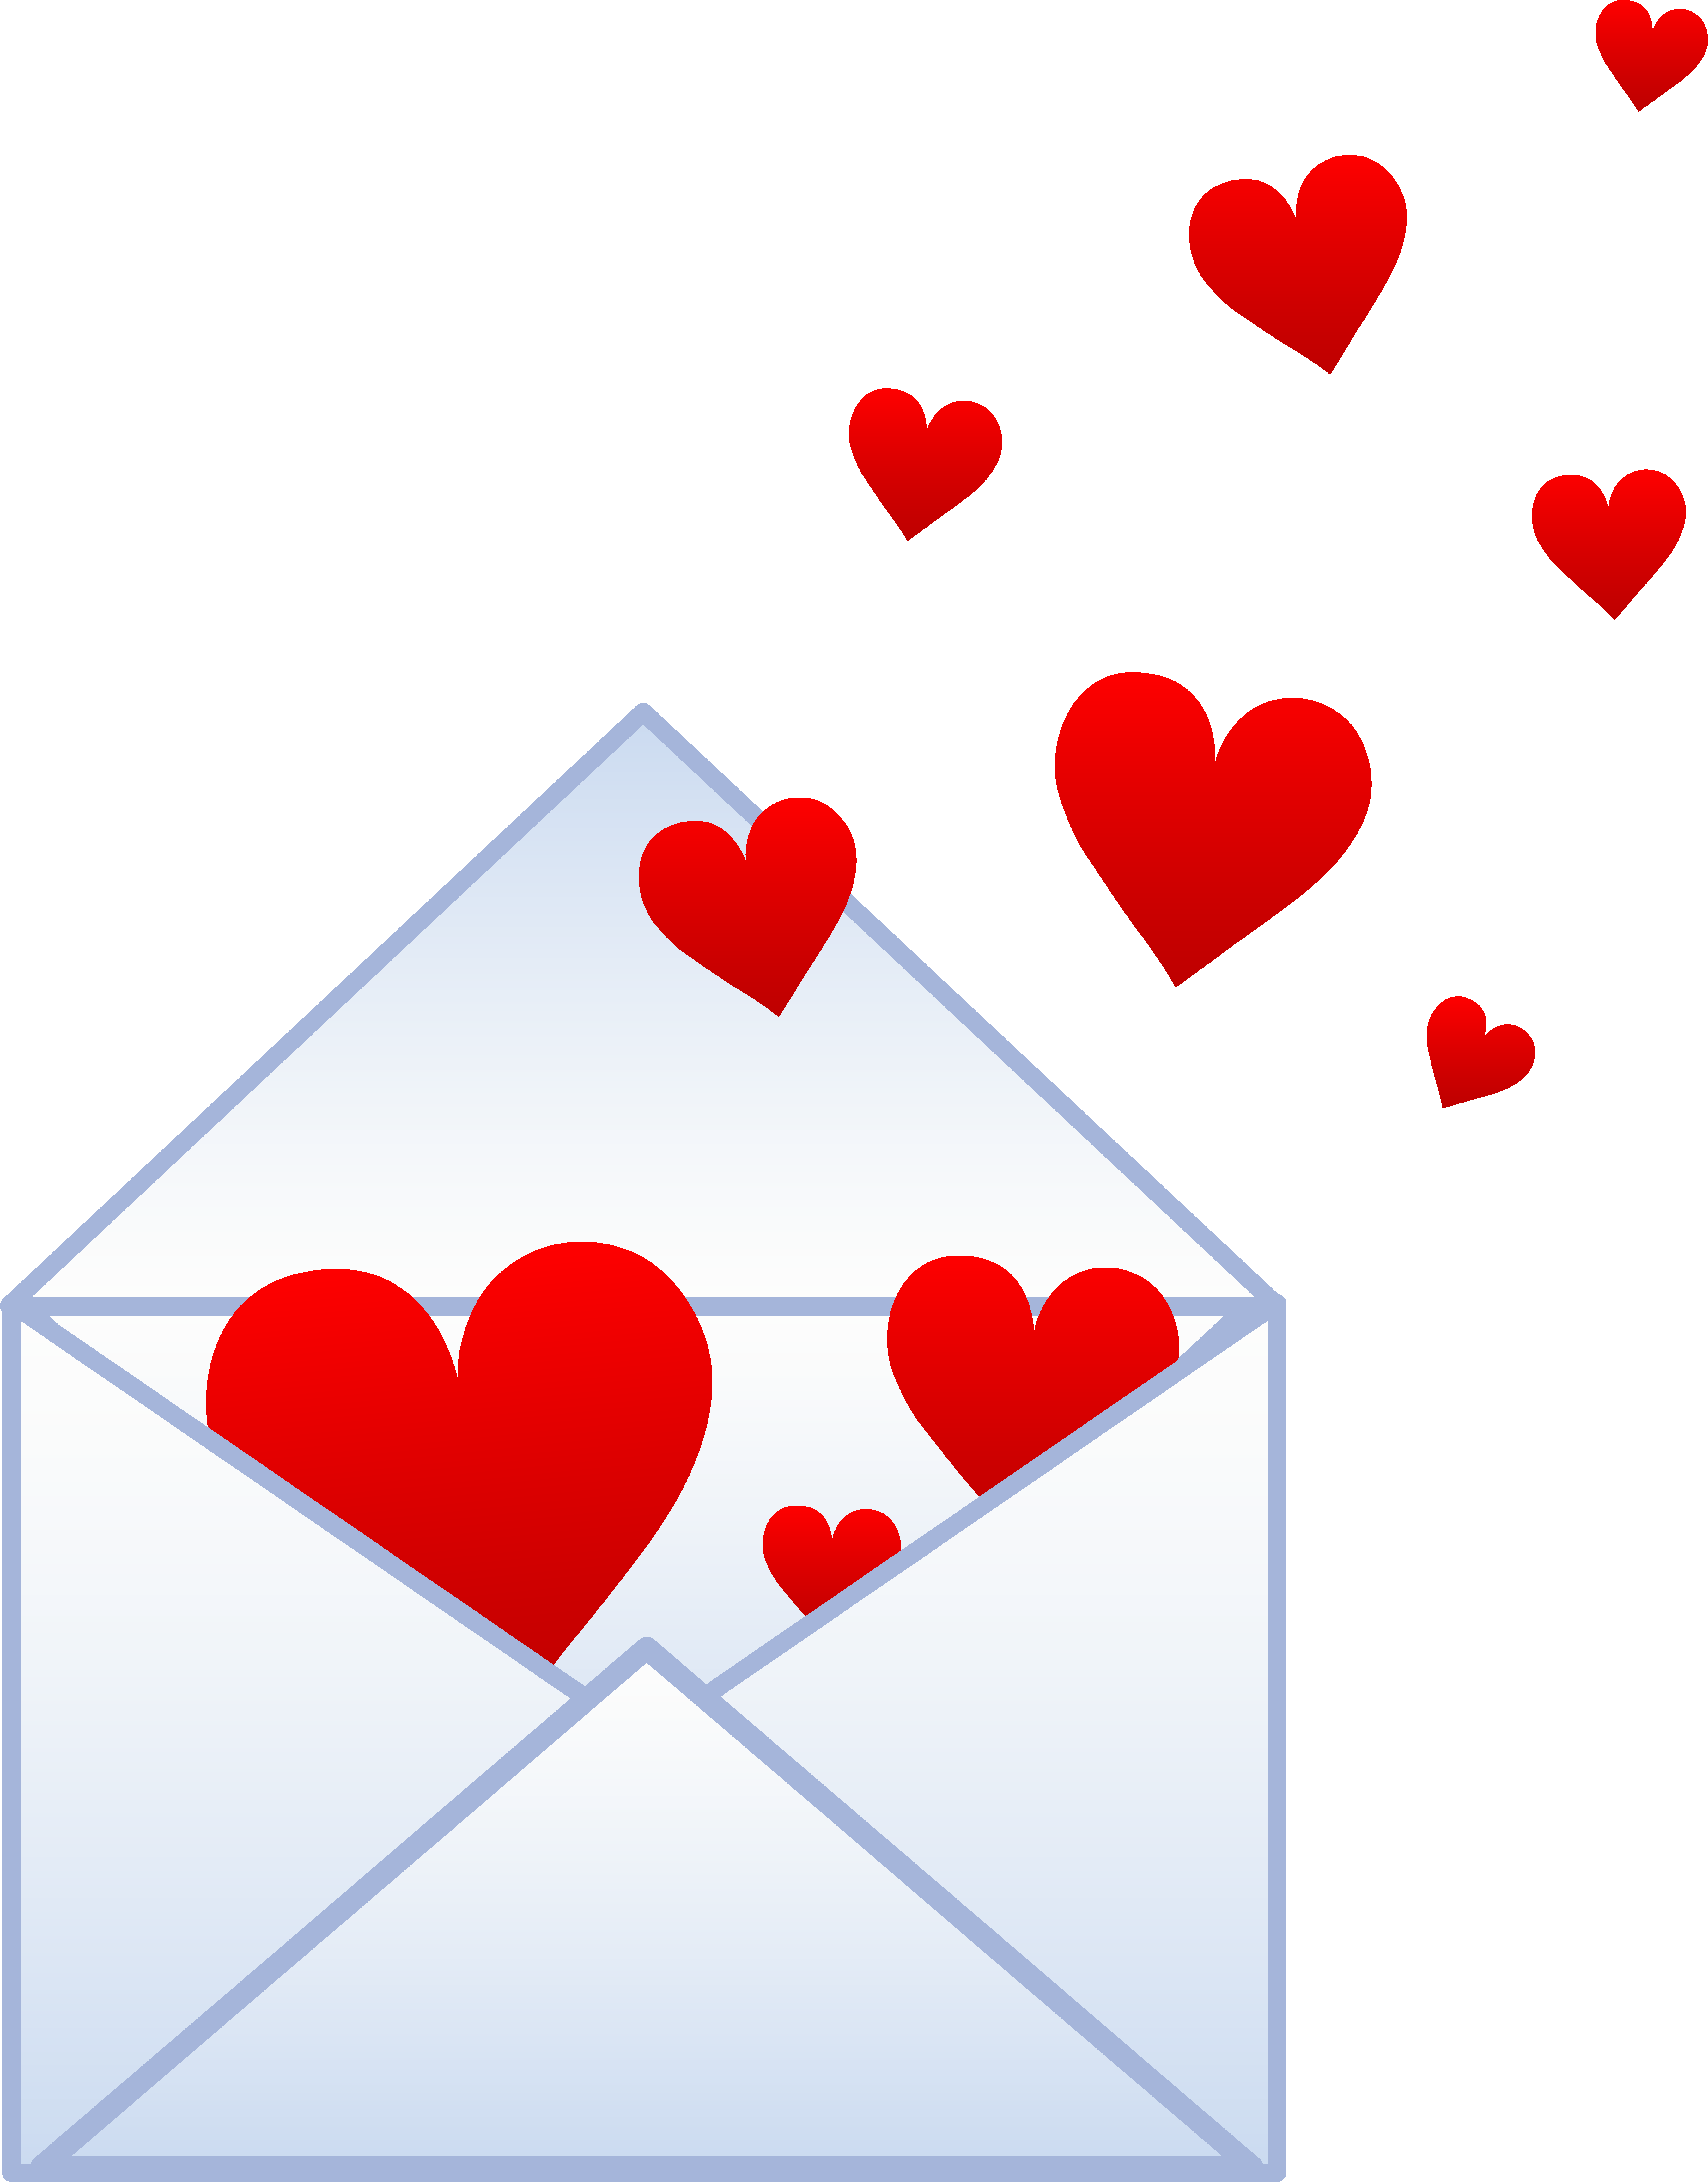 Clipart hearts free graphic transparent library Free Pictures Hearts | Letter With Hearts Flying Out - Free Clip Art ... graphic transparent library